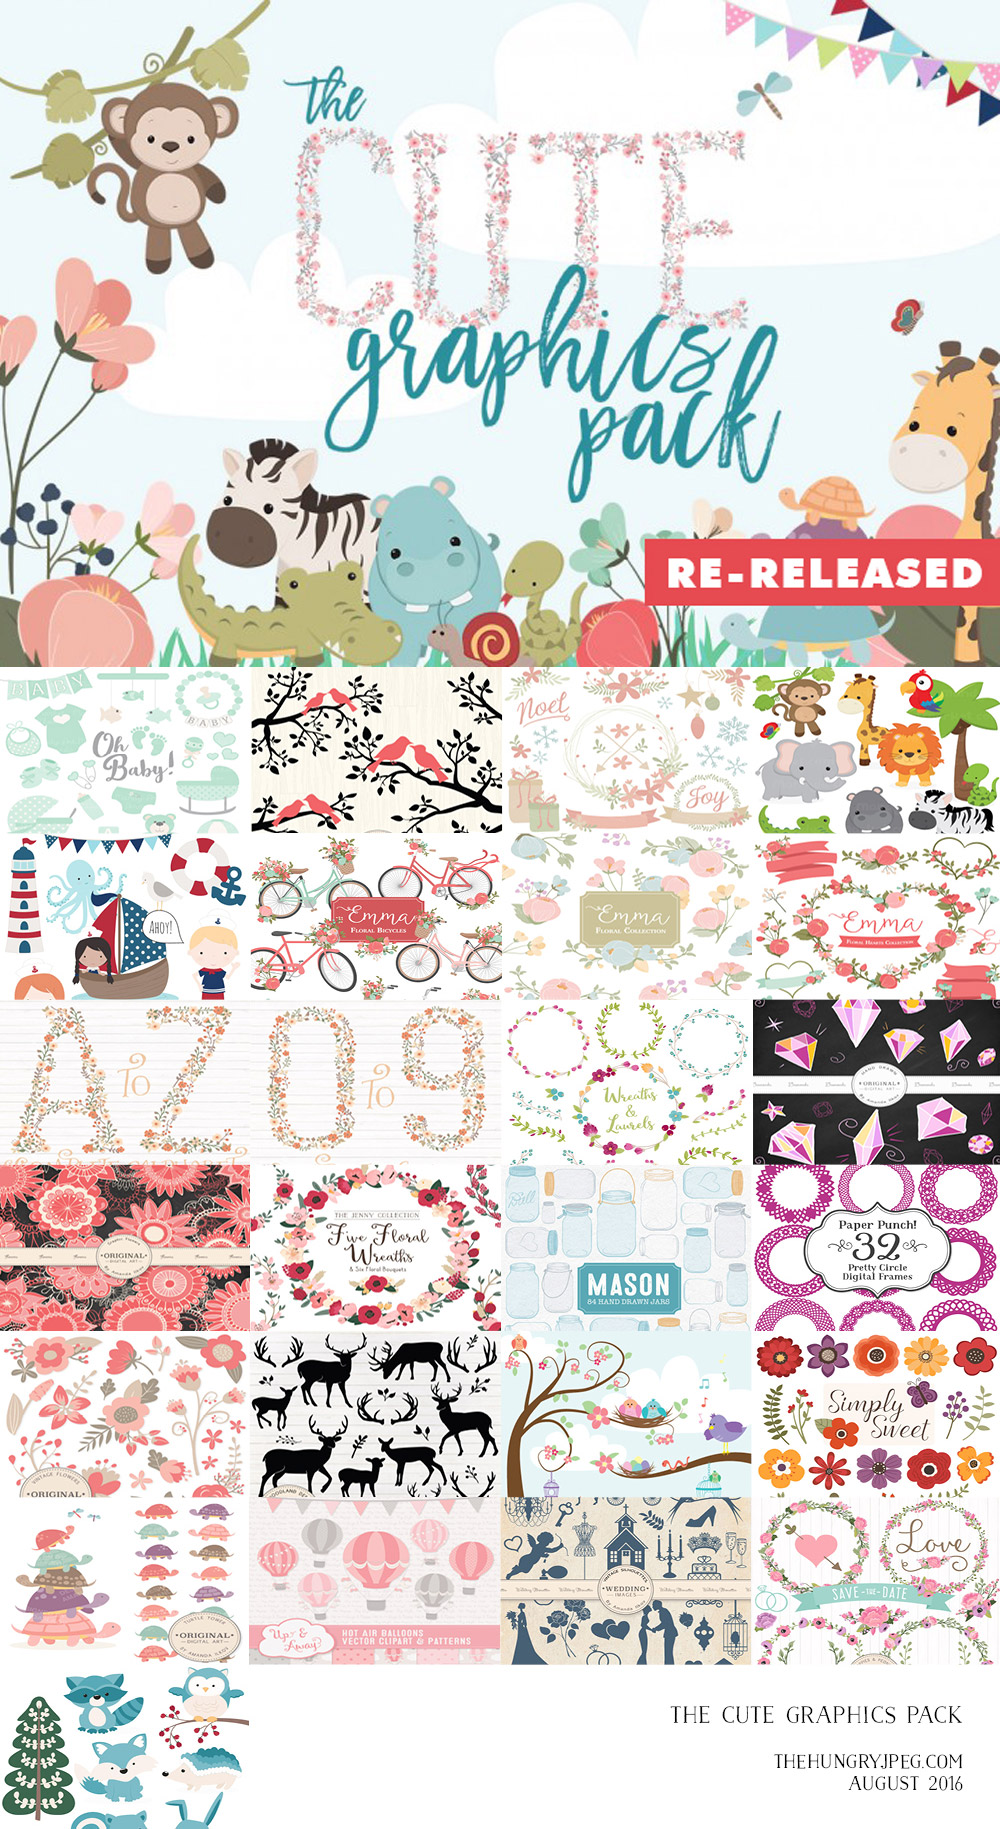 The Cute Graphics Pack